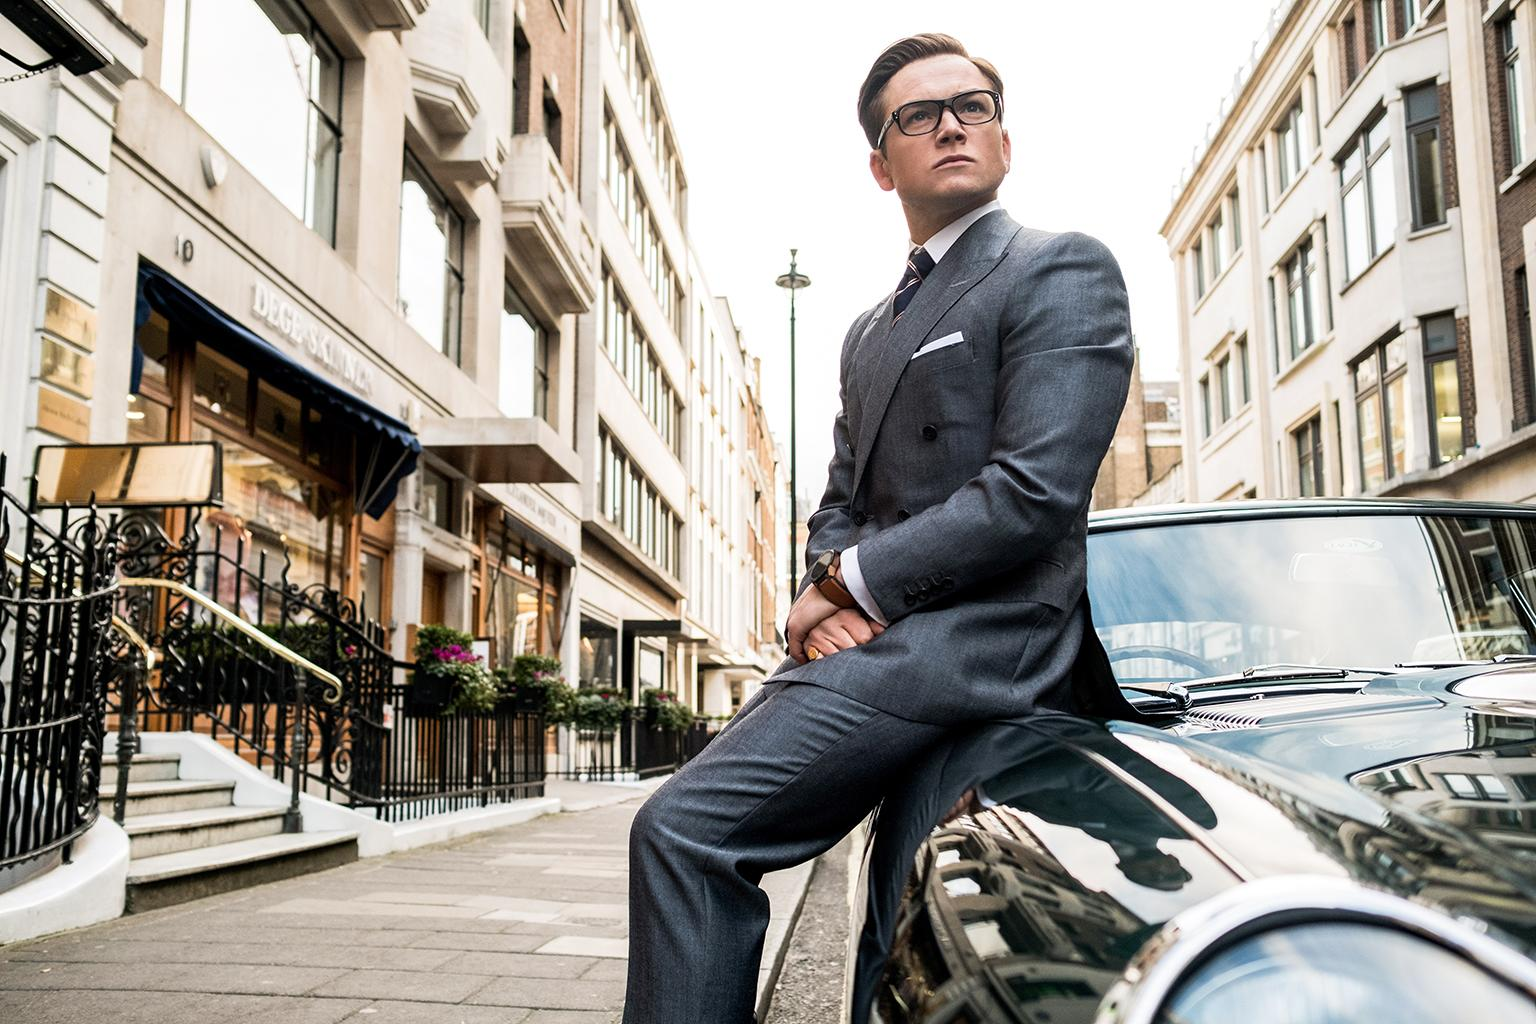 Taron Egerton Says He's Not Returning For Next Kingsman Film